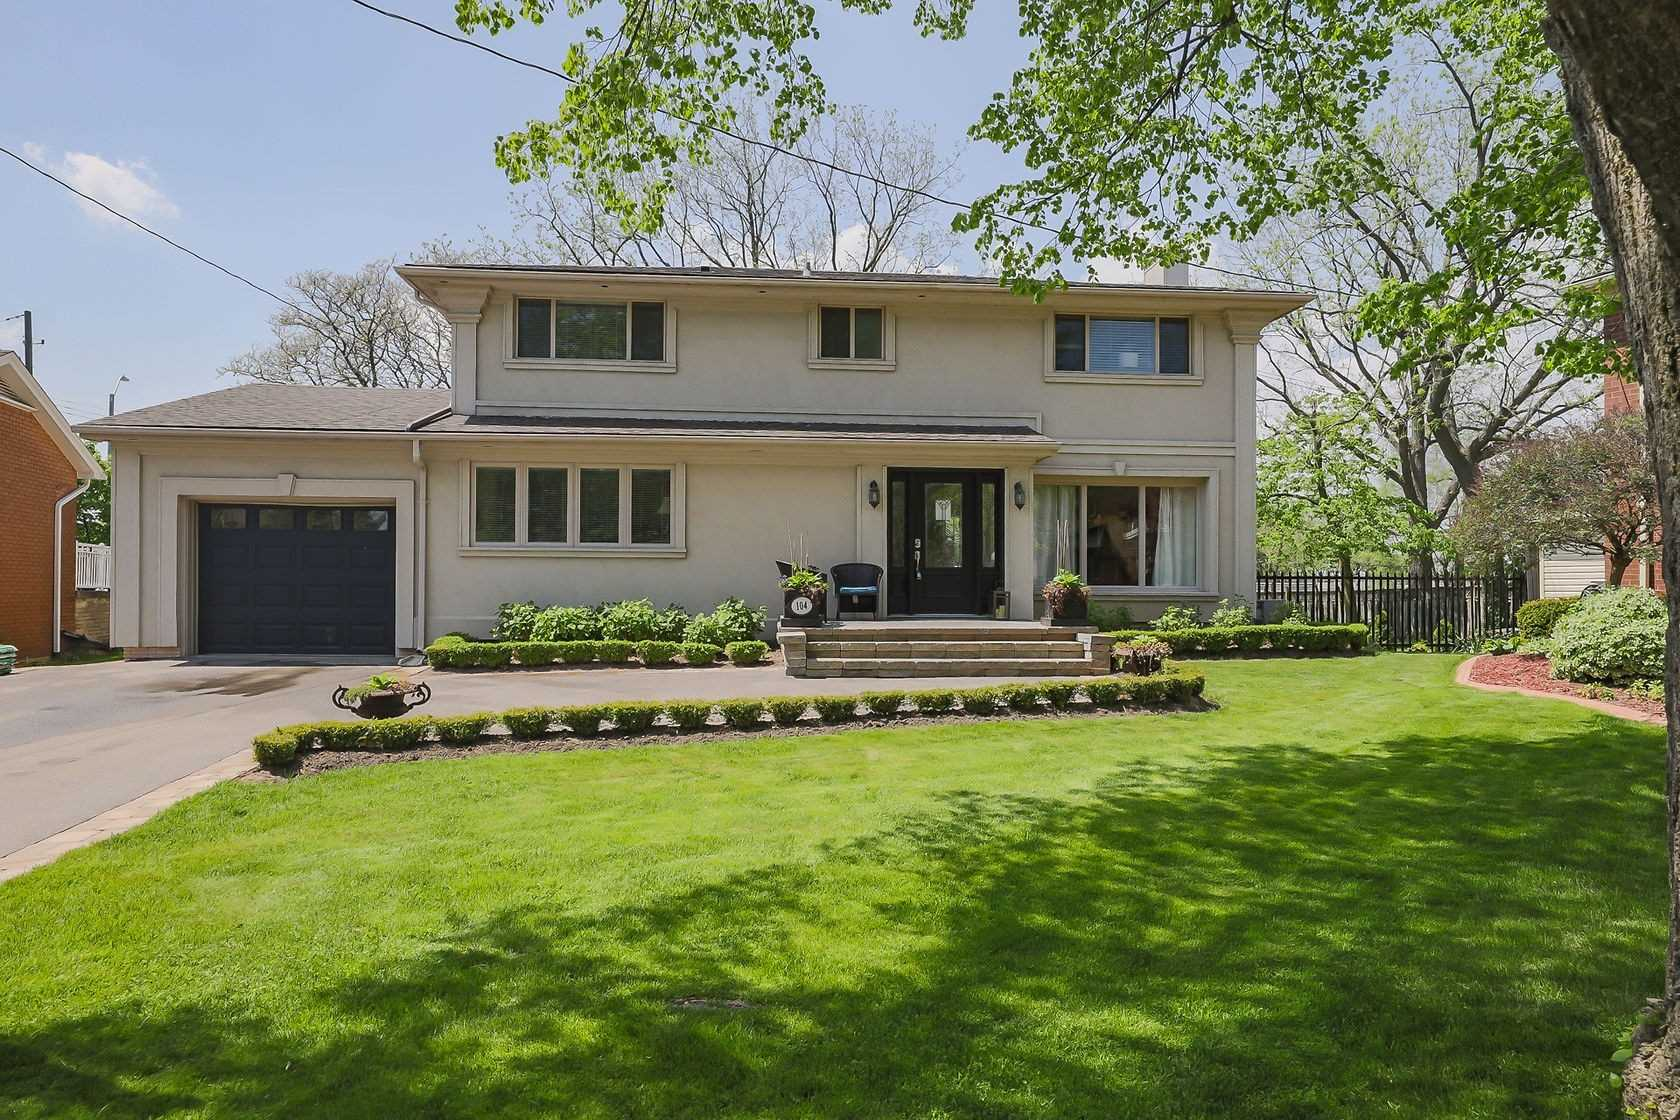 For Sale: 104 Inverness Court, Hamilton, ON | 4 Bed, 4 Bath House for $879900.00. See 39 photos!